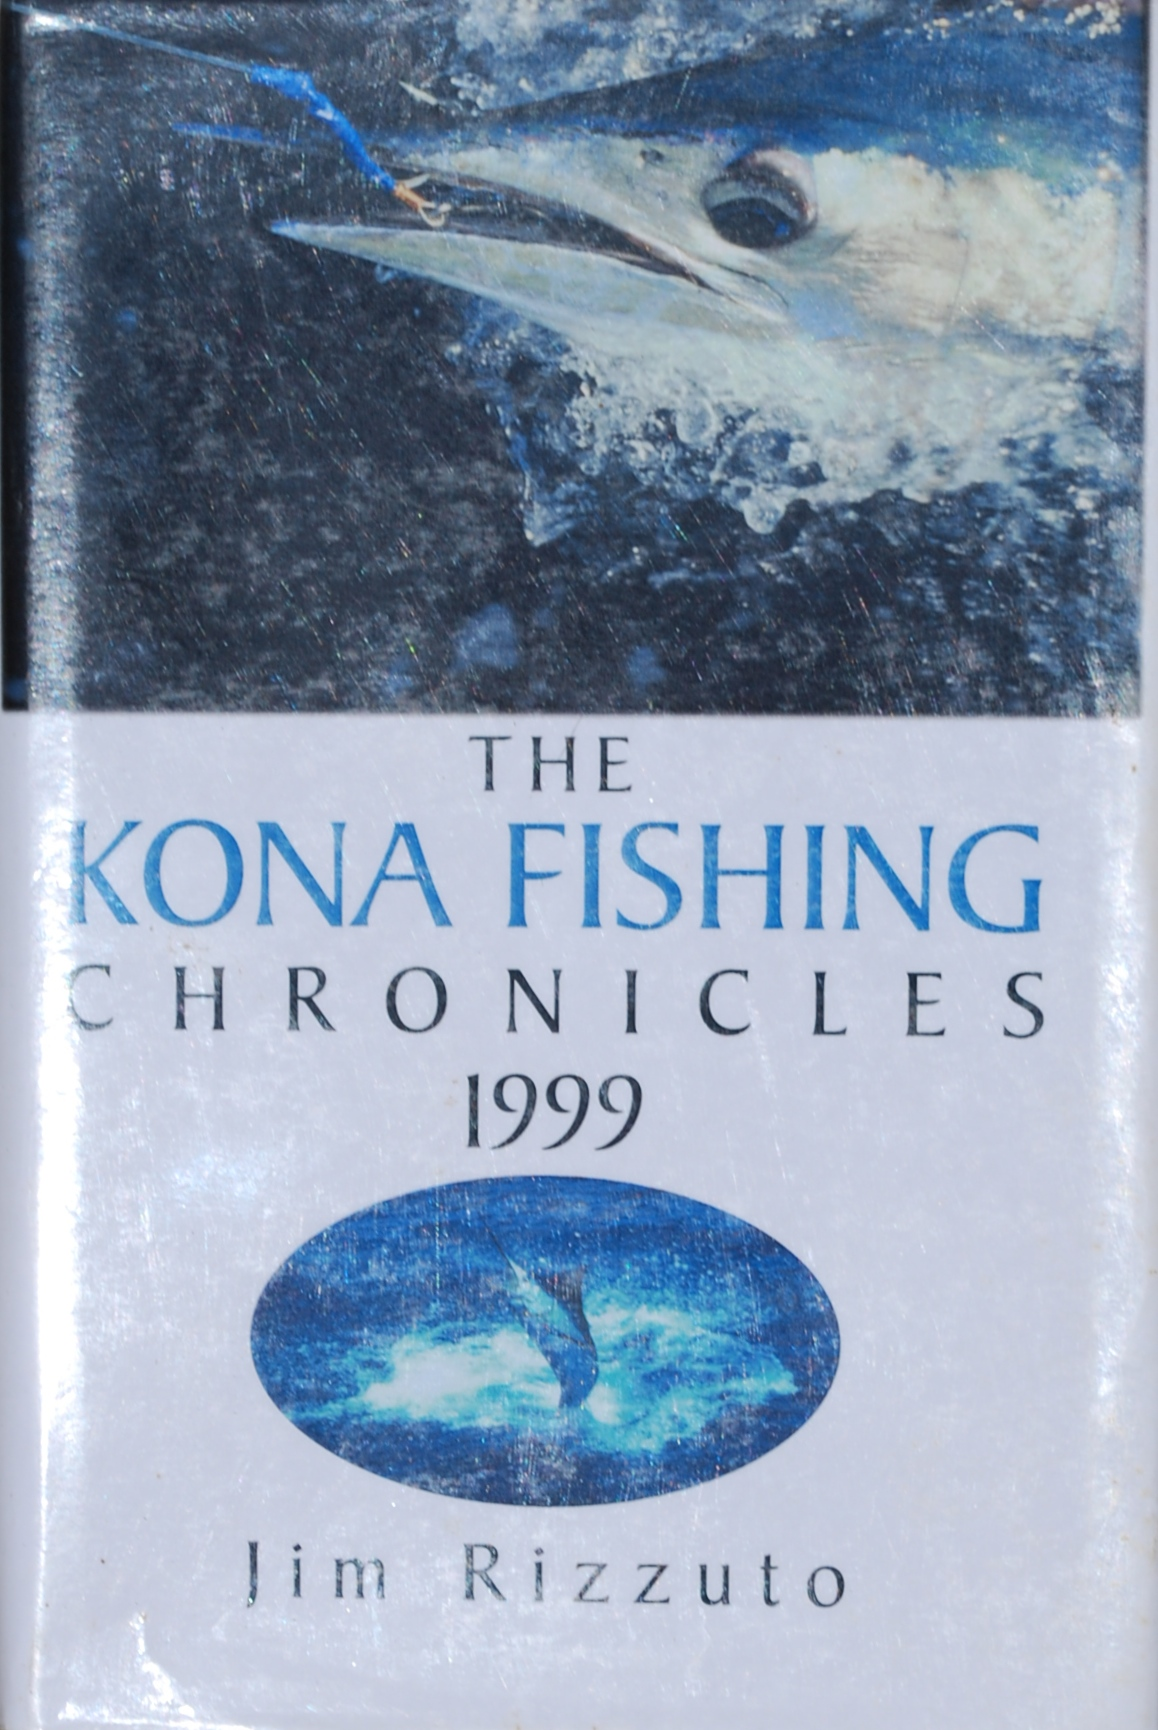 For Kona Fishing, 100-lb Ono Rarer than Grander Blues